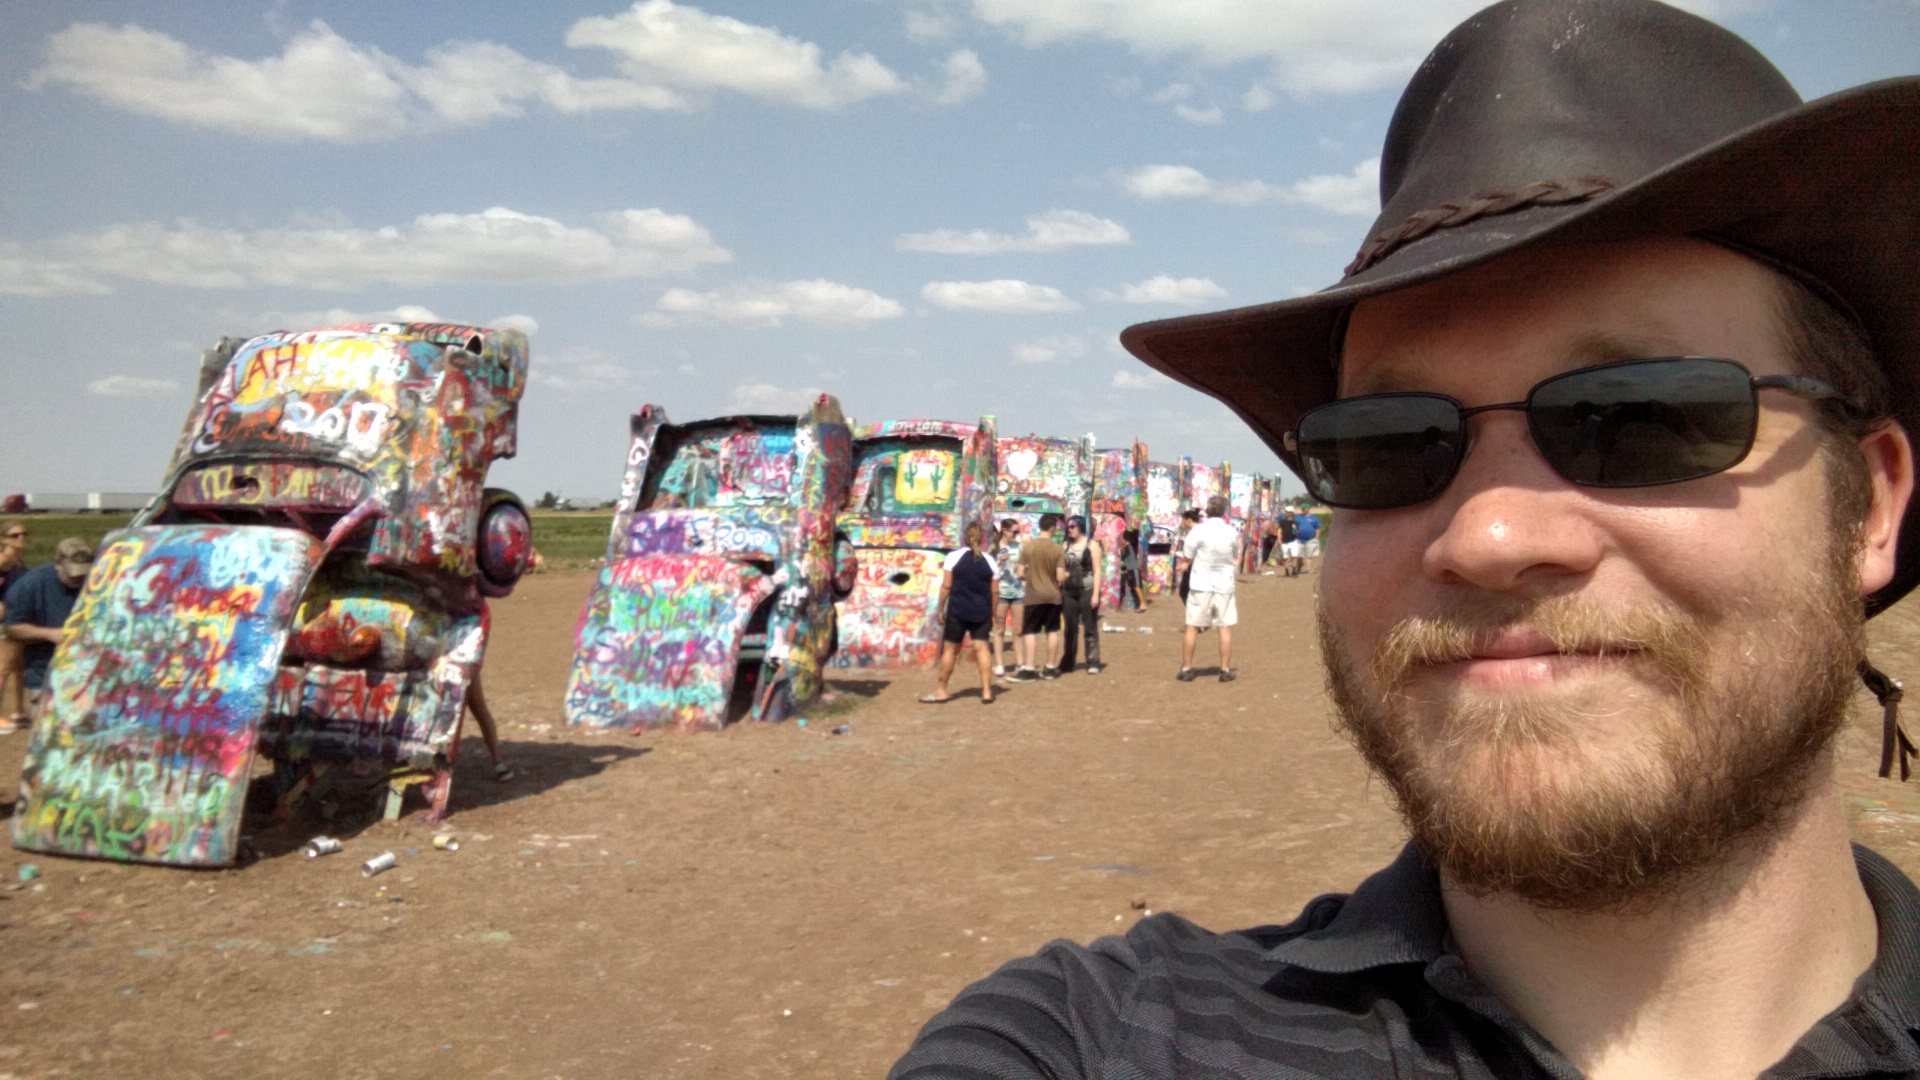 The Cadillac Ranch. Basically 10 old Cadillacs stuck halfway in the ground and covered in about 6 inches of spray paint graffiti. It was interesting.